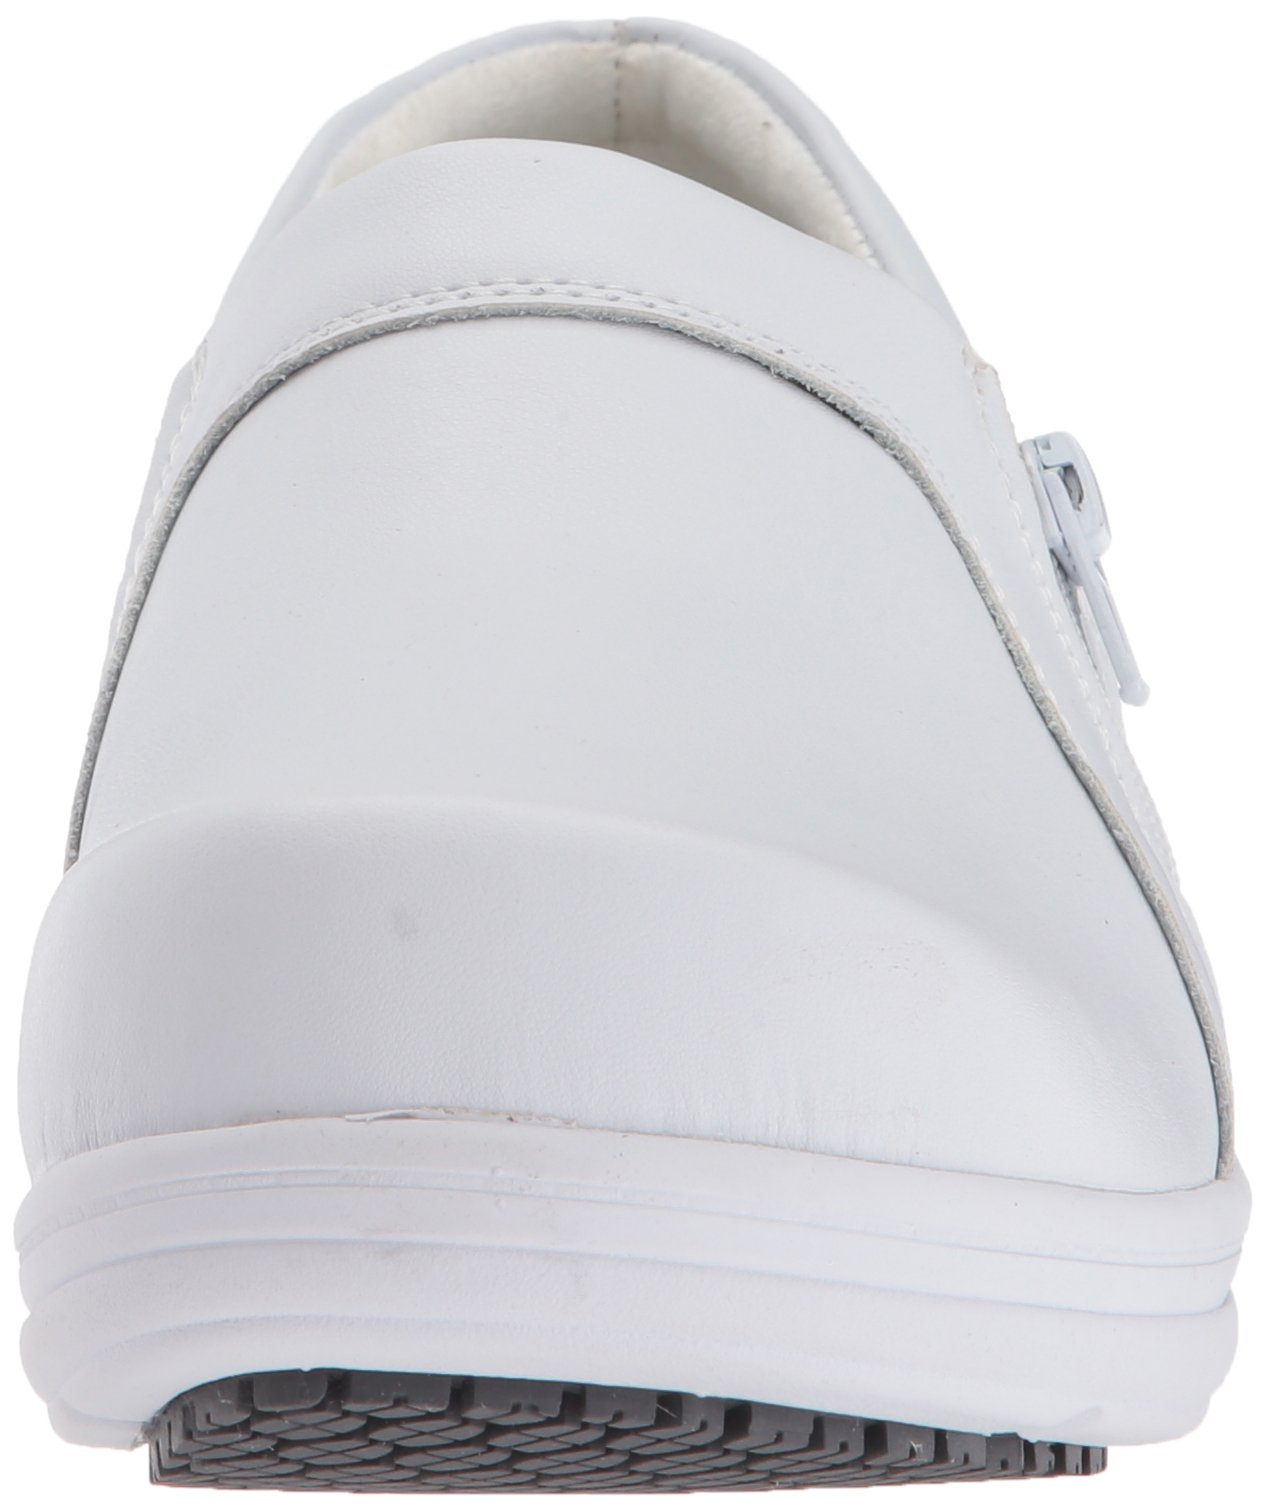 Easy Works Women's Bentley Health Care Professional Shoe, White, 9 M US by Easy Works (Image #4)